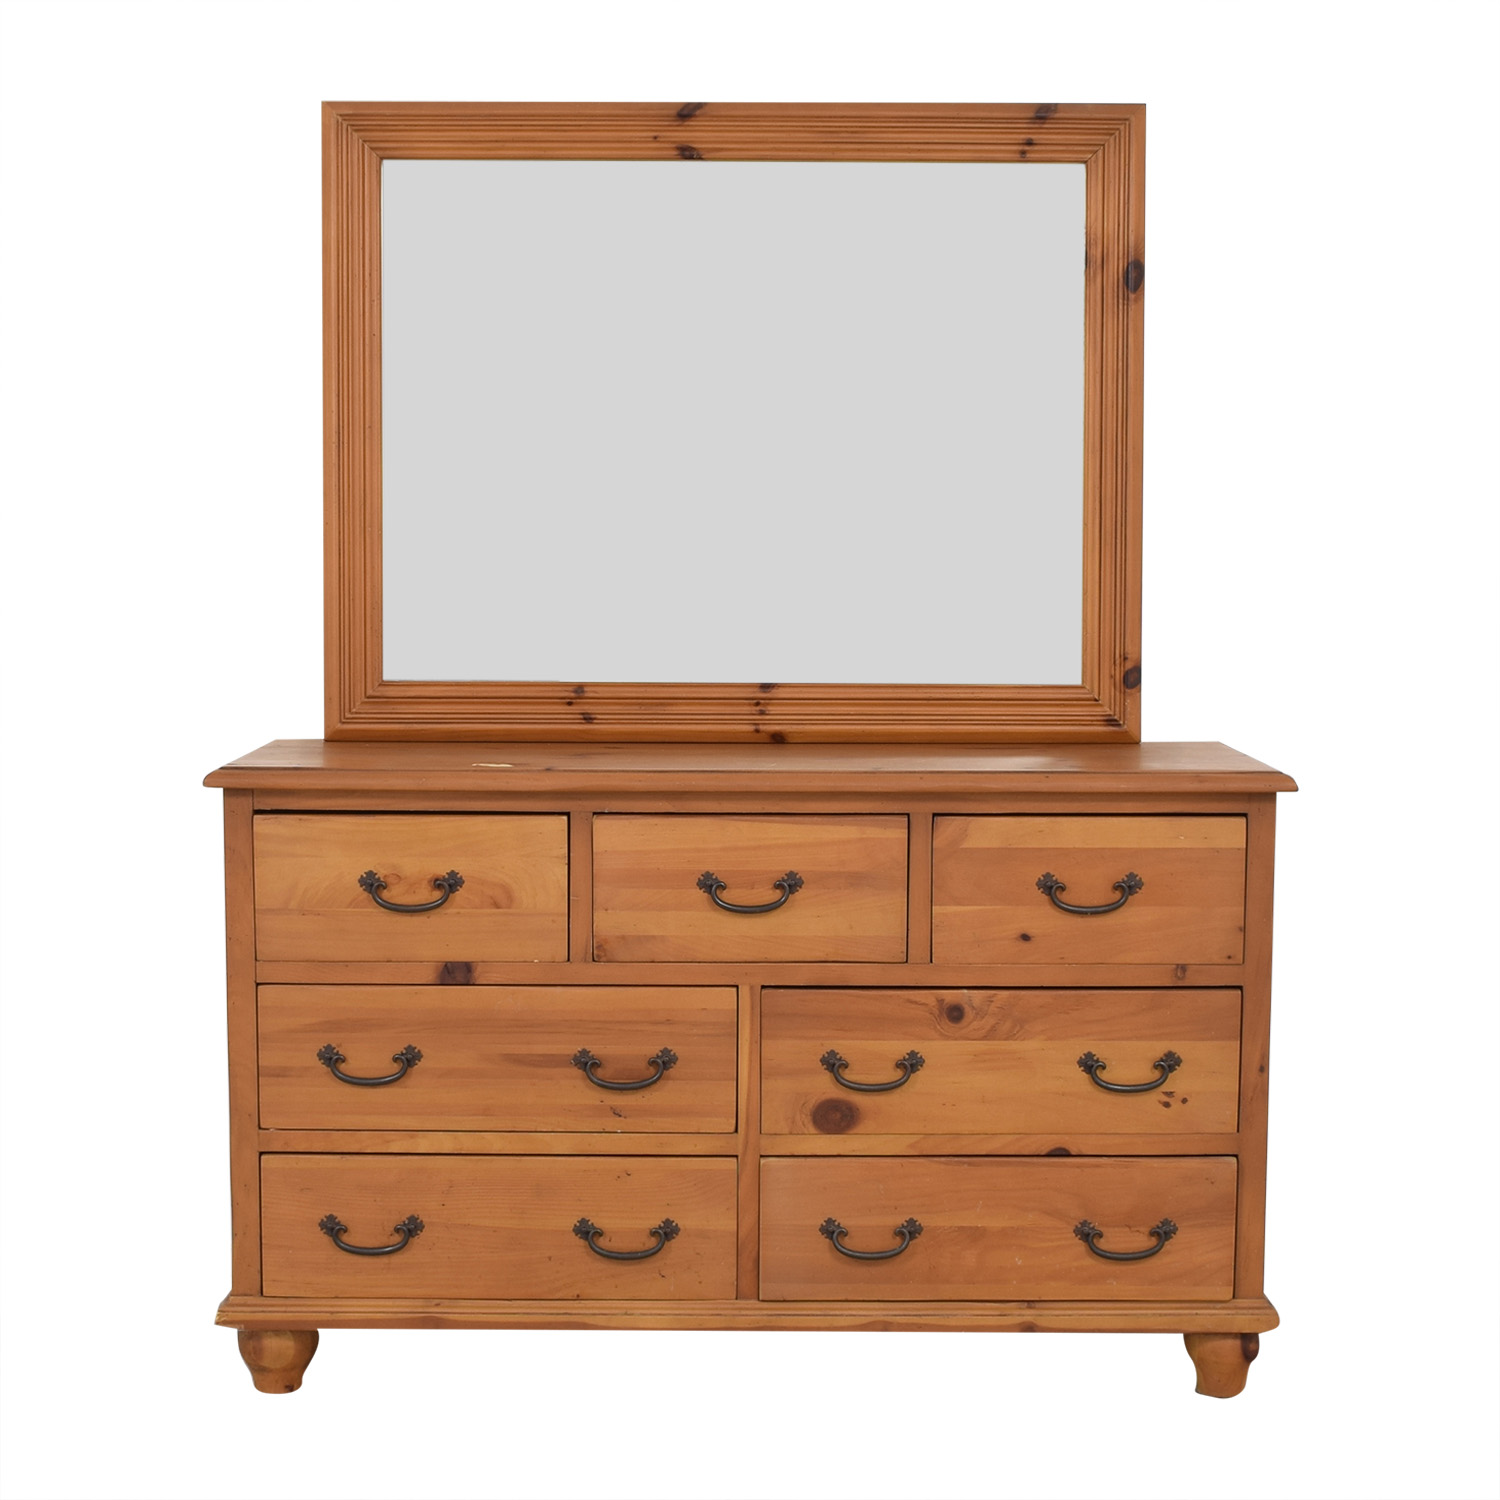 Macy's Macy's Dresser and Kensington Mirror discount